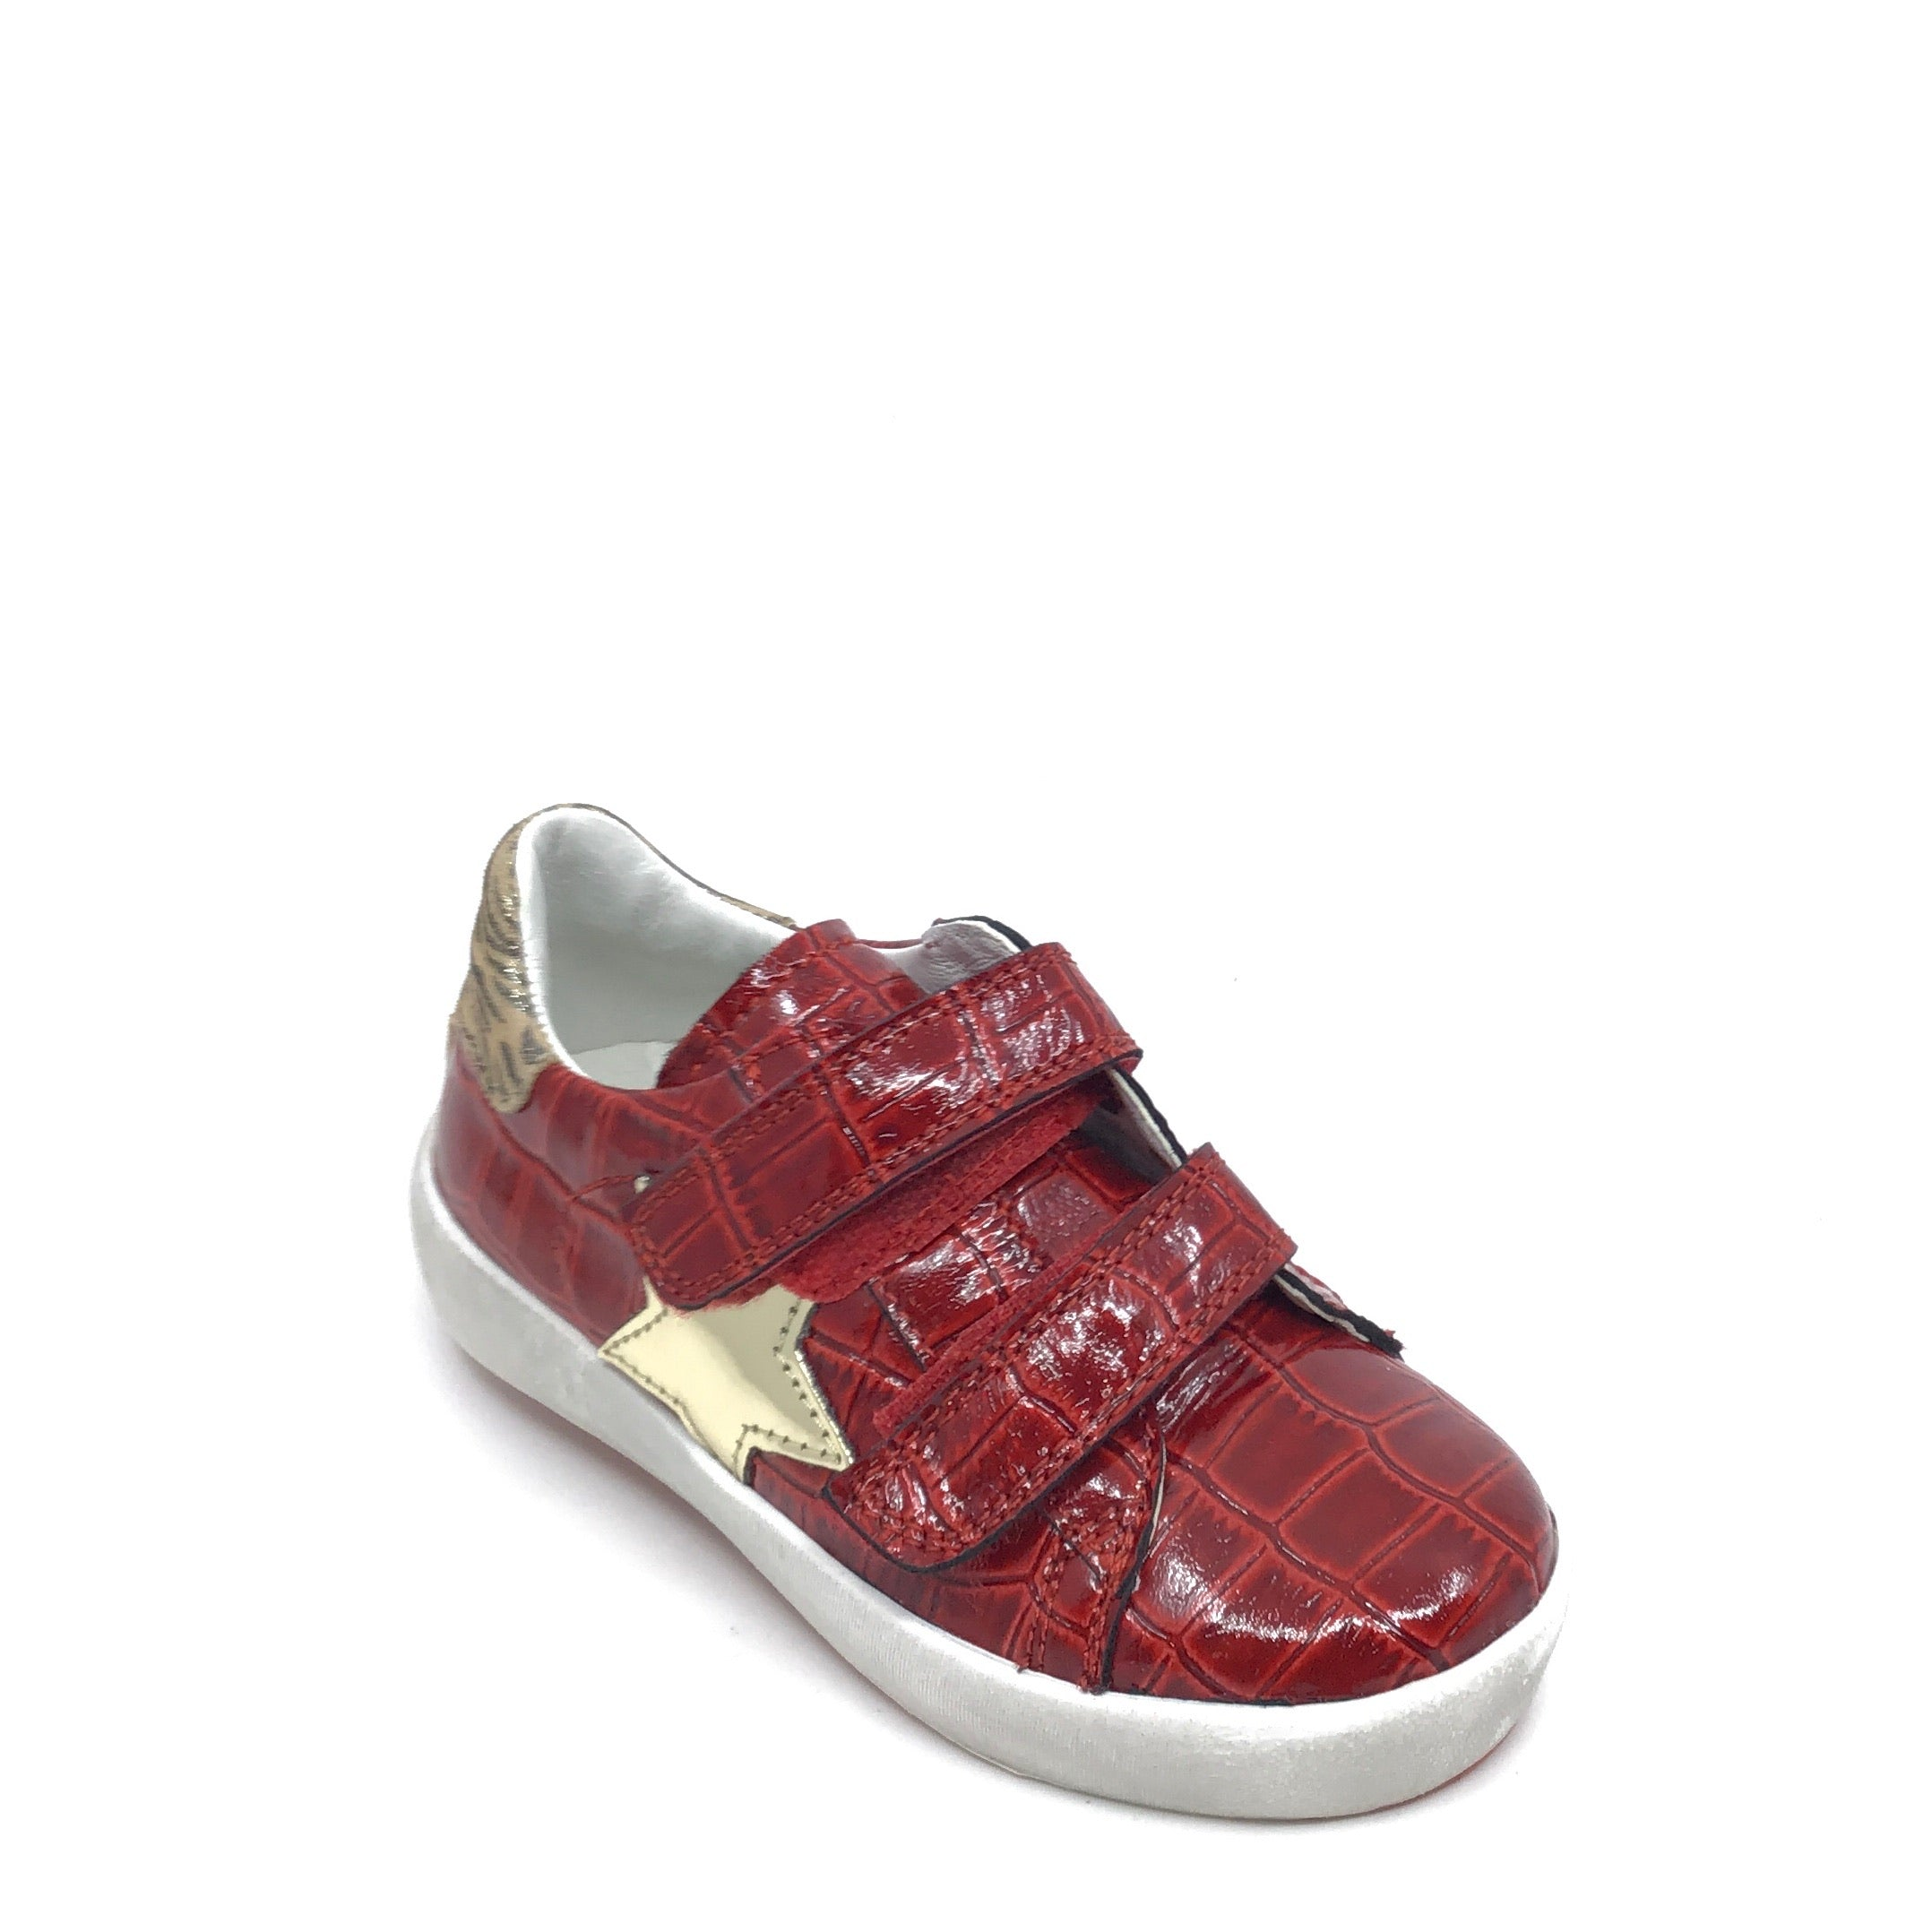 Naturino Red Alligator Skin Velcro Sneaker